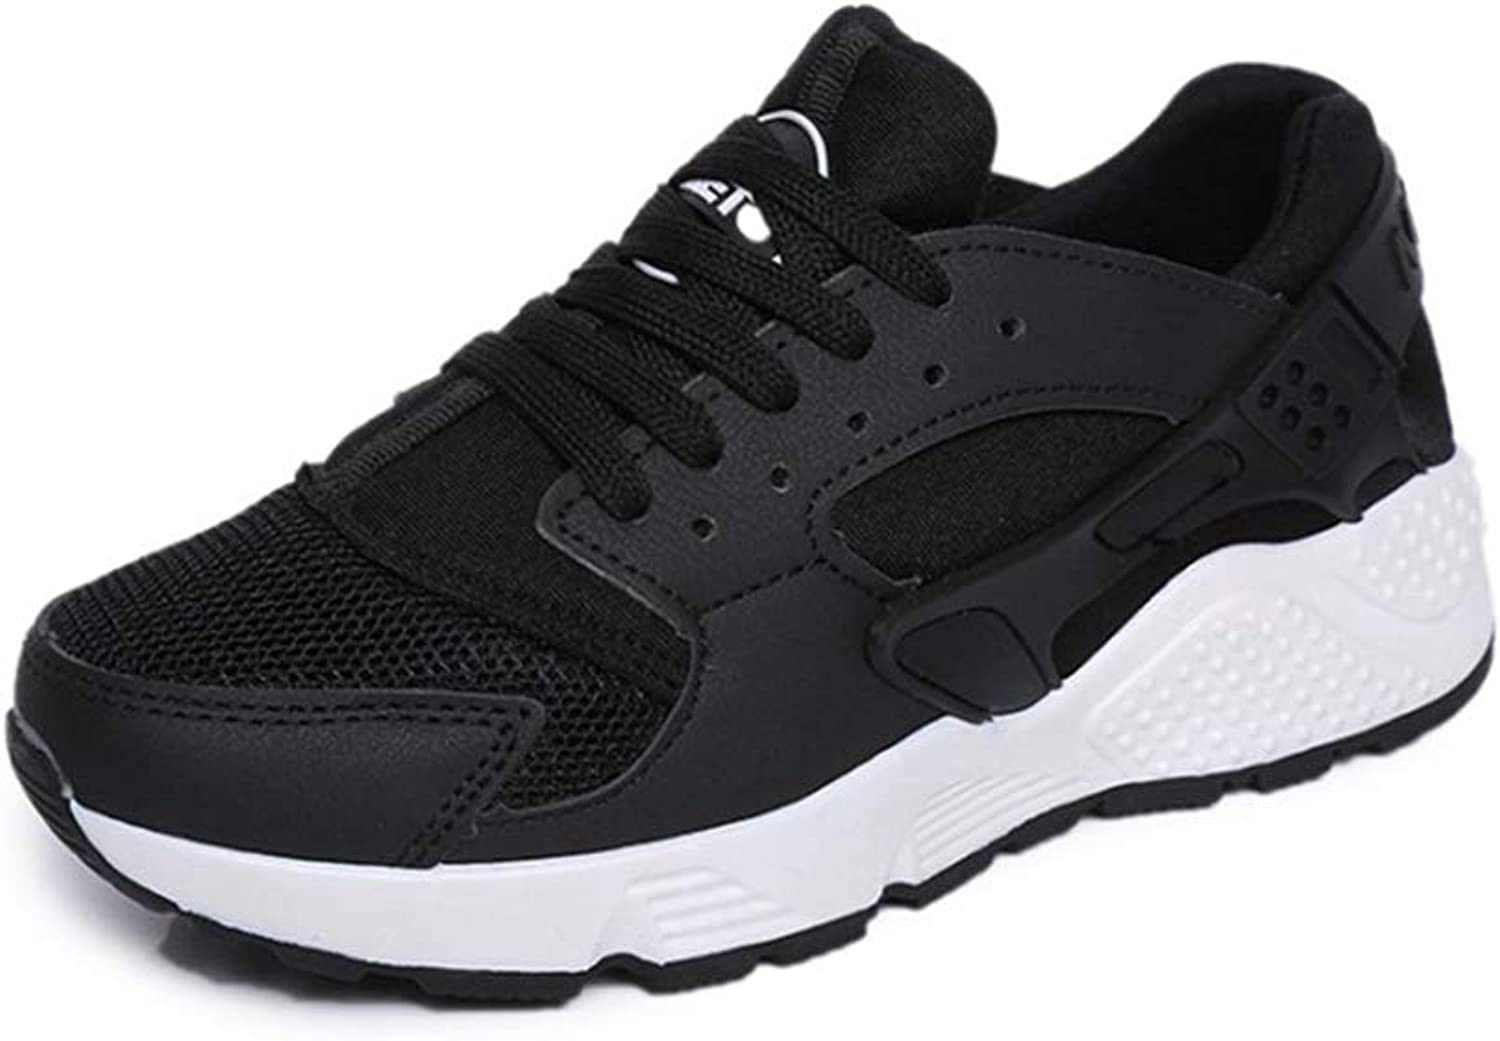 U-MAC Womens Wedge Platform Sneakers Fashion Casual Soft Sole Mesh Breathable Lace Up Athletic Running shoes